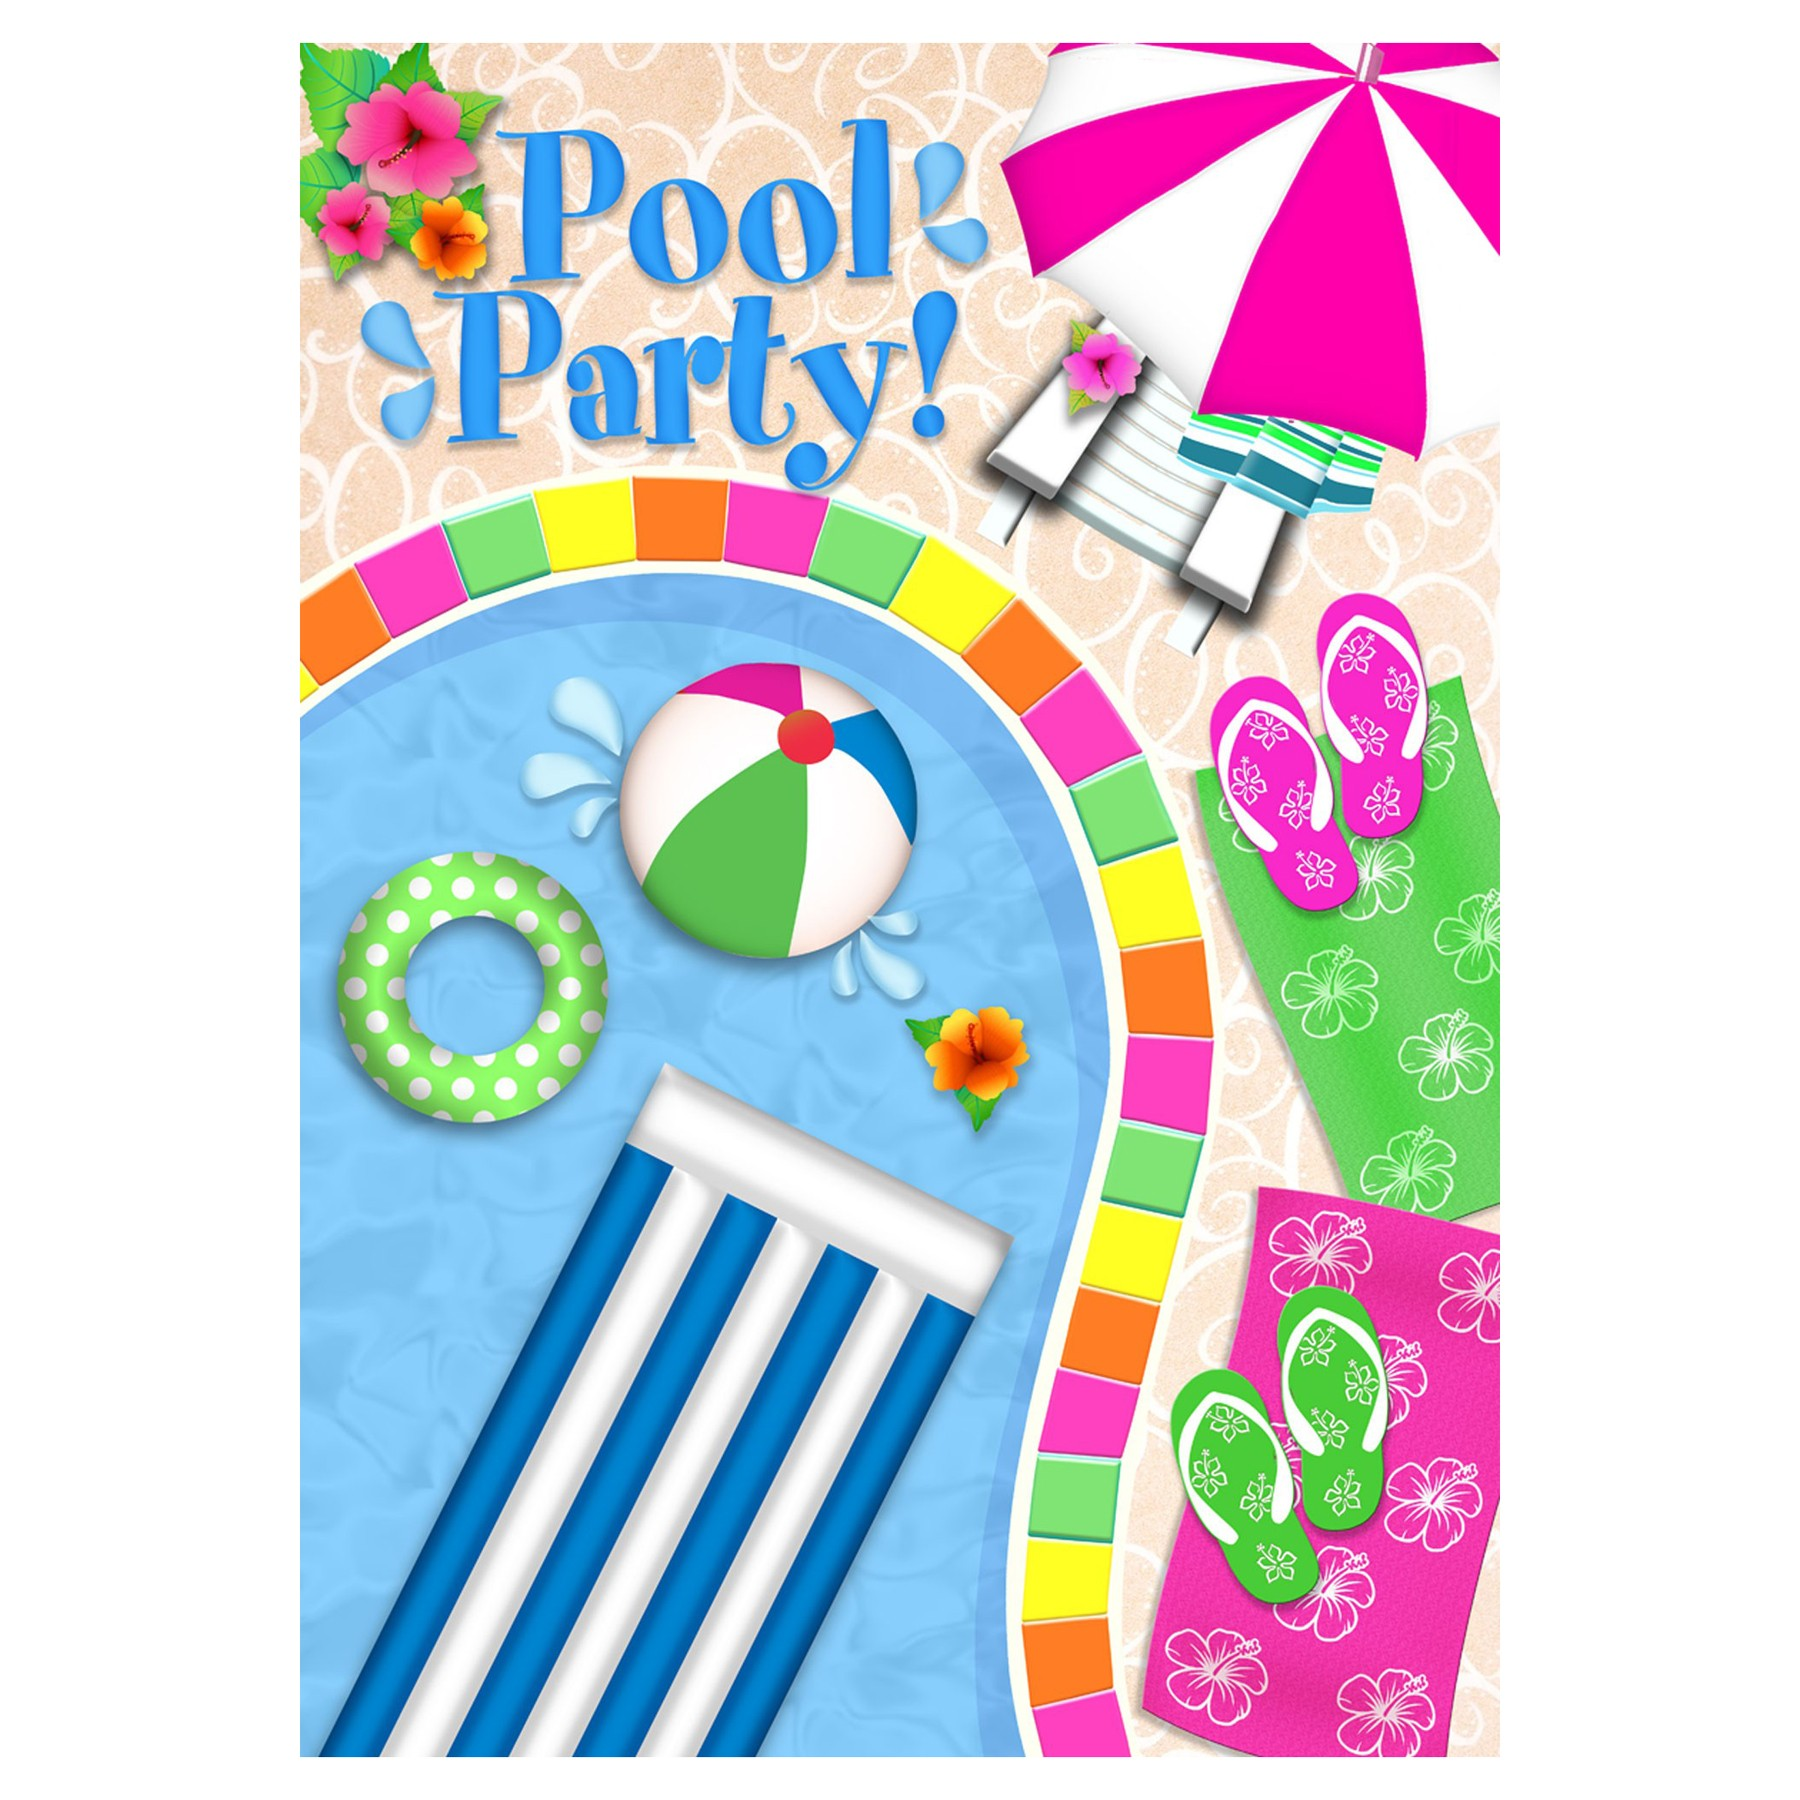 pool clipart - Pool Party Pictures Clip Art